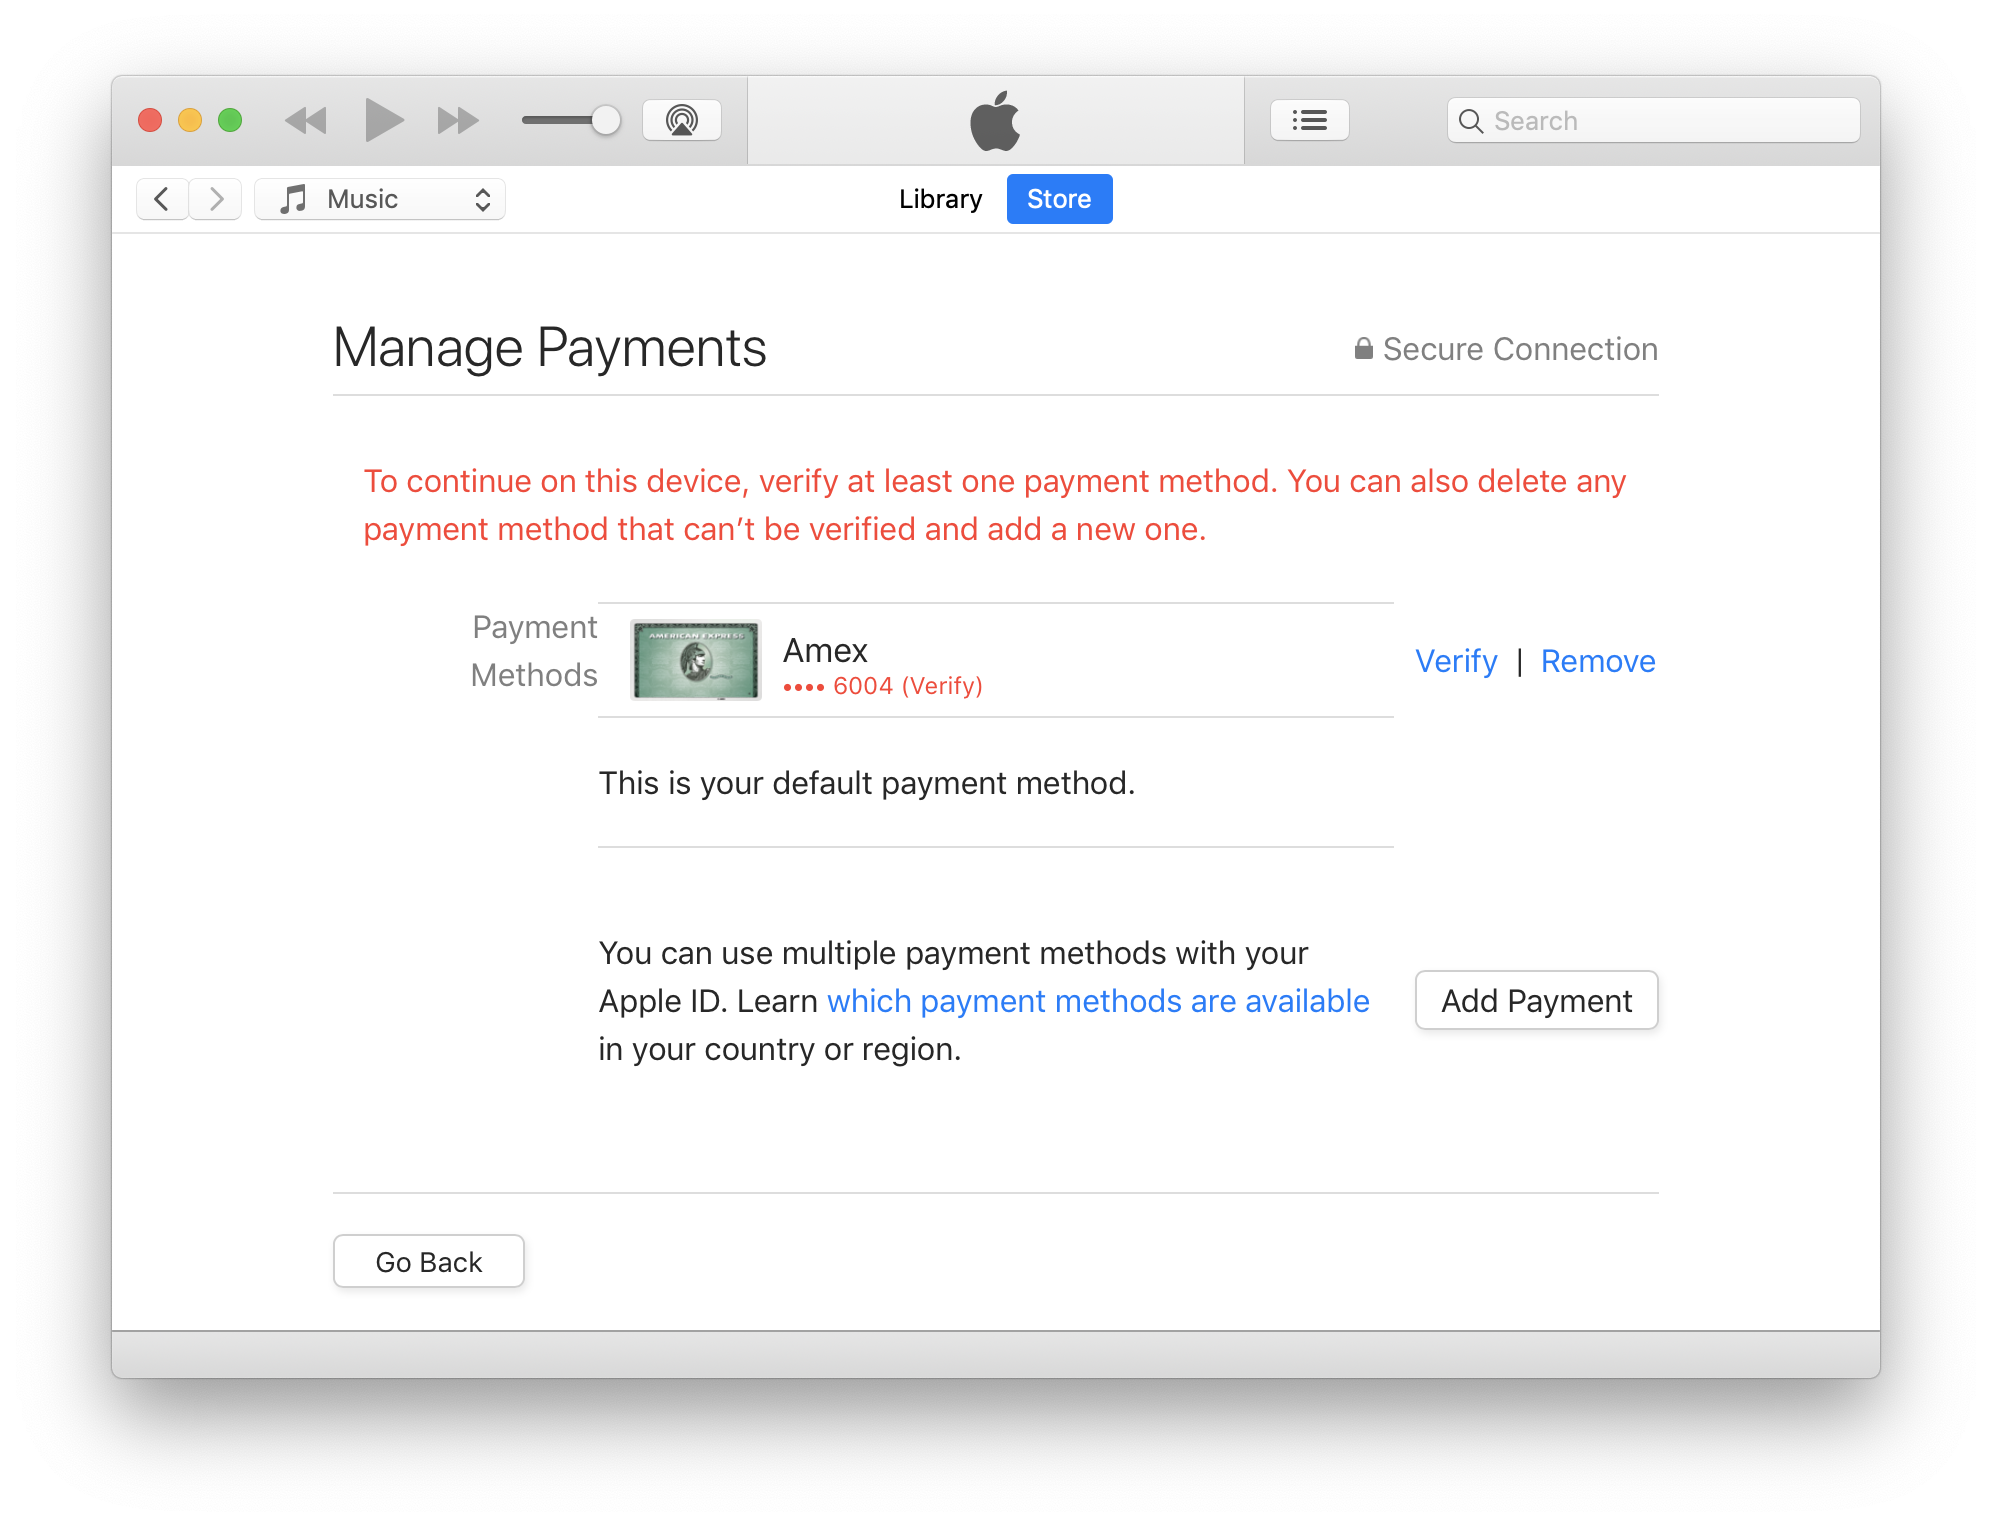 cant add credit card to apple account - Apple Community